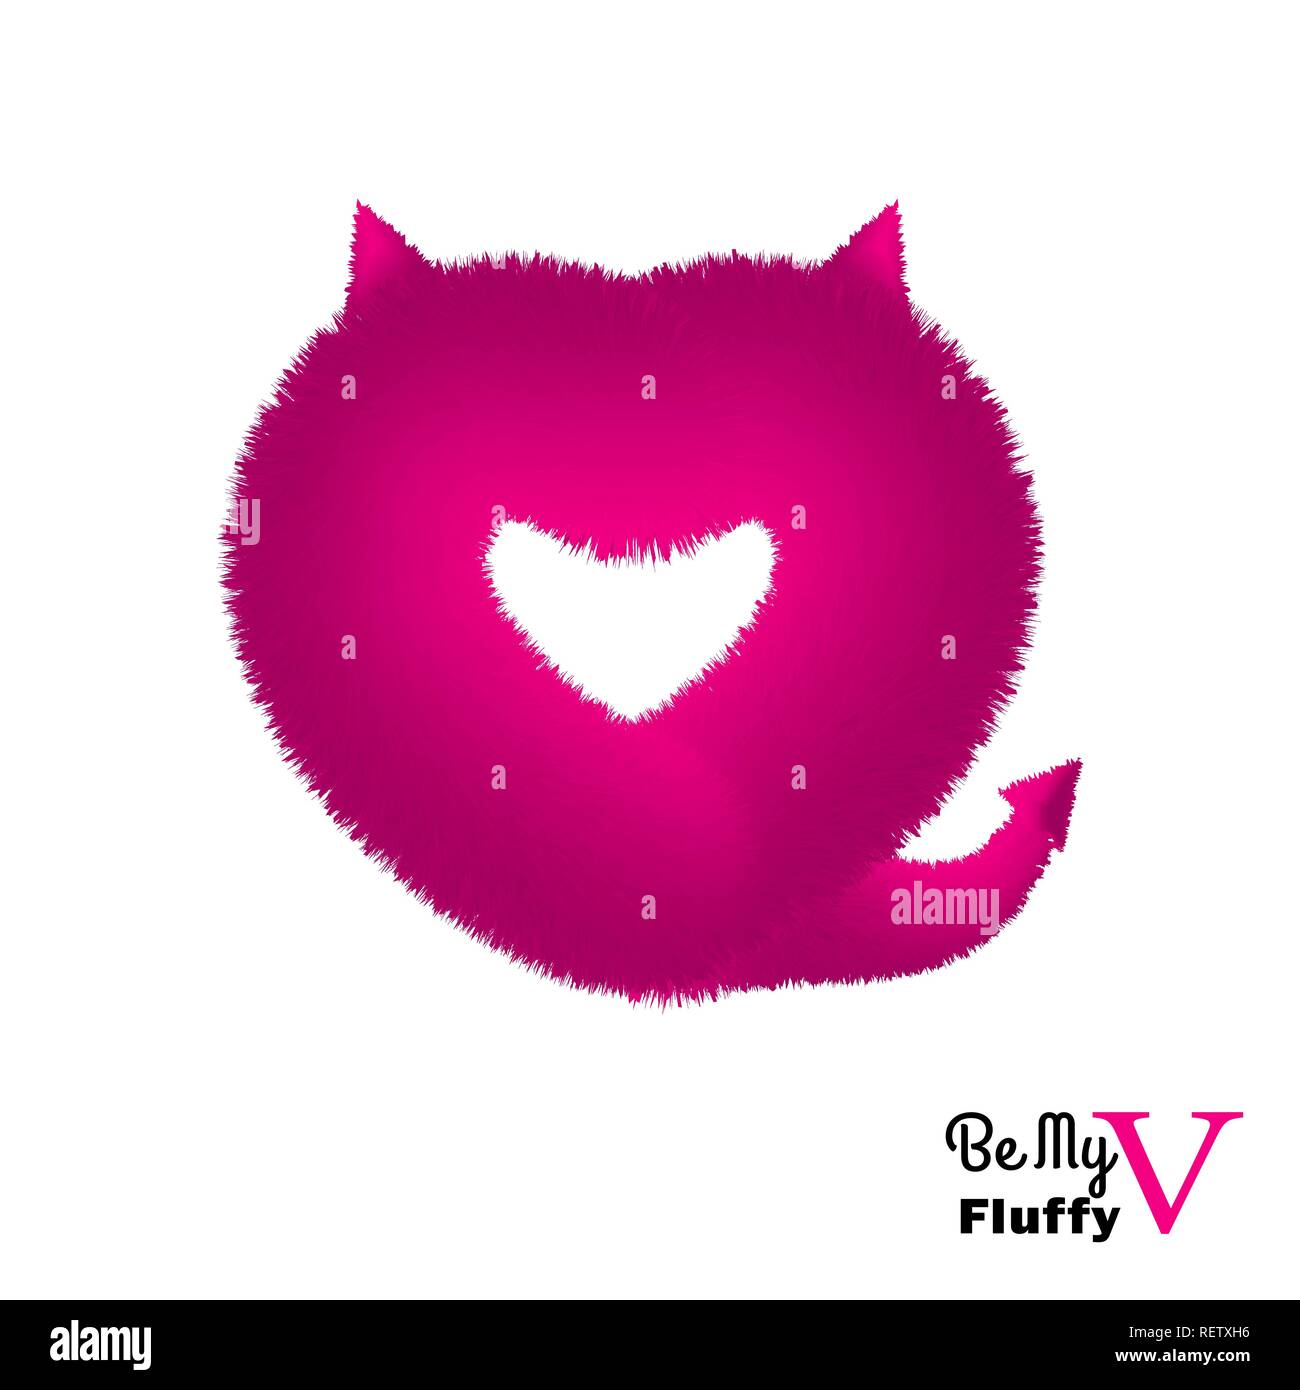 Cute instagram card with pink fluffy devil heart - Stock Vector